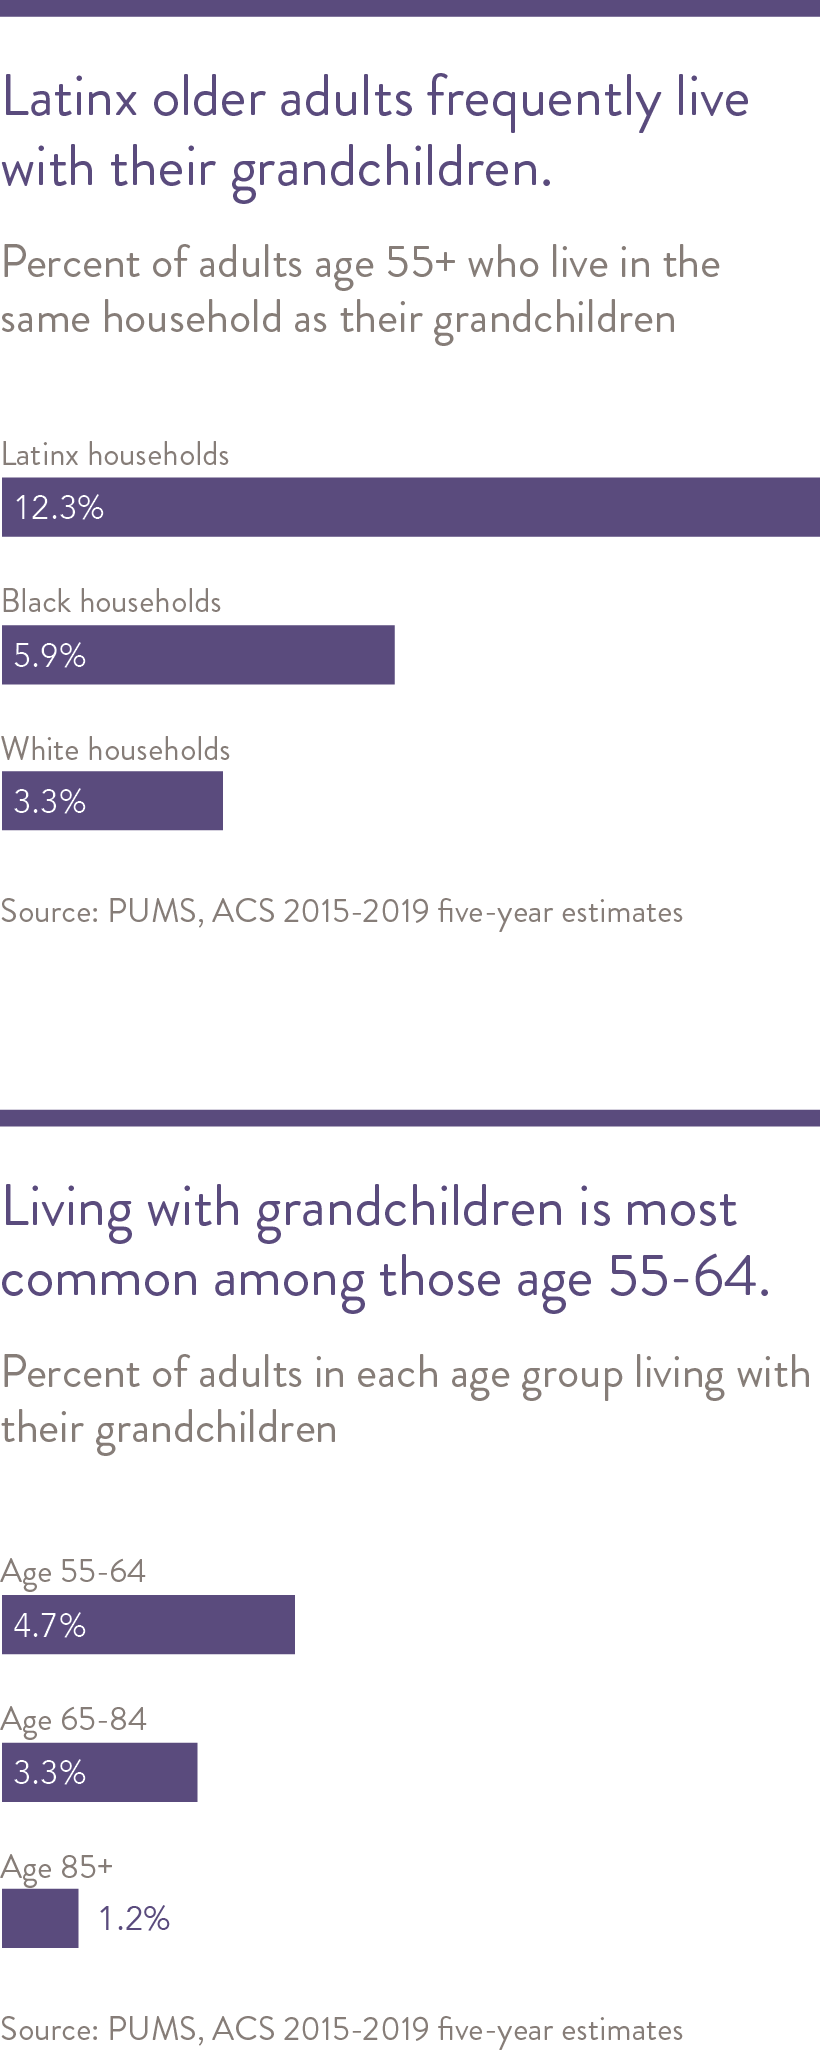 Older racial/ethnic minorities frequently live in households with multiple generations